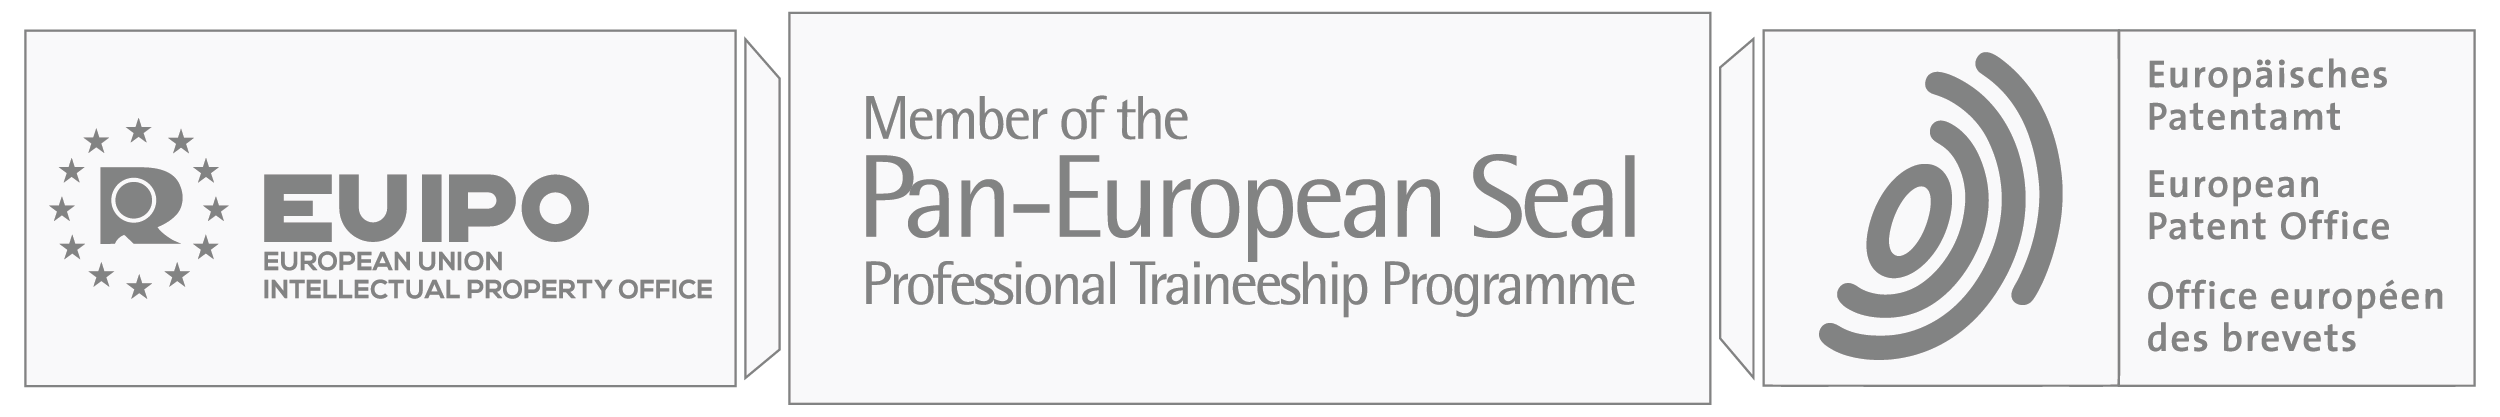 Pan-European Seal Programme 2020